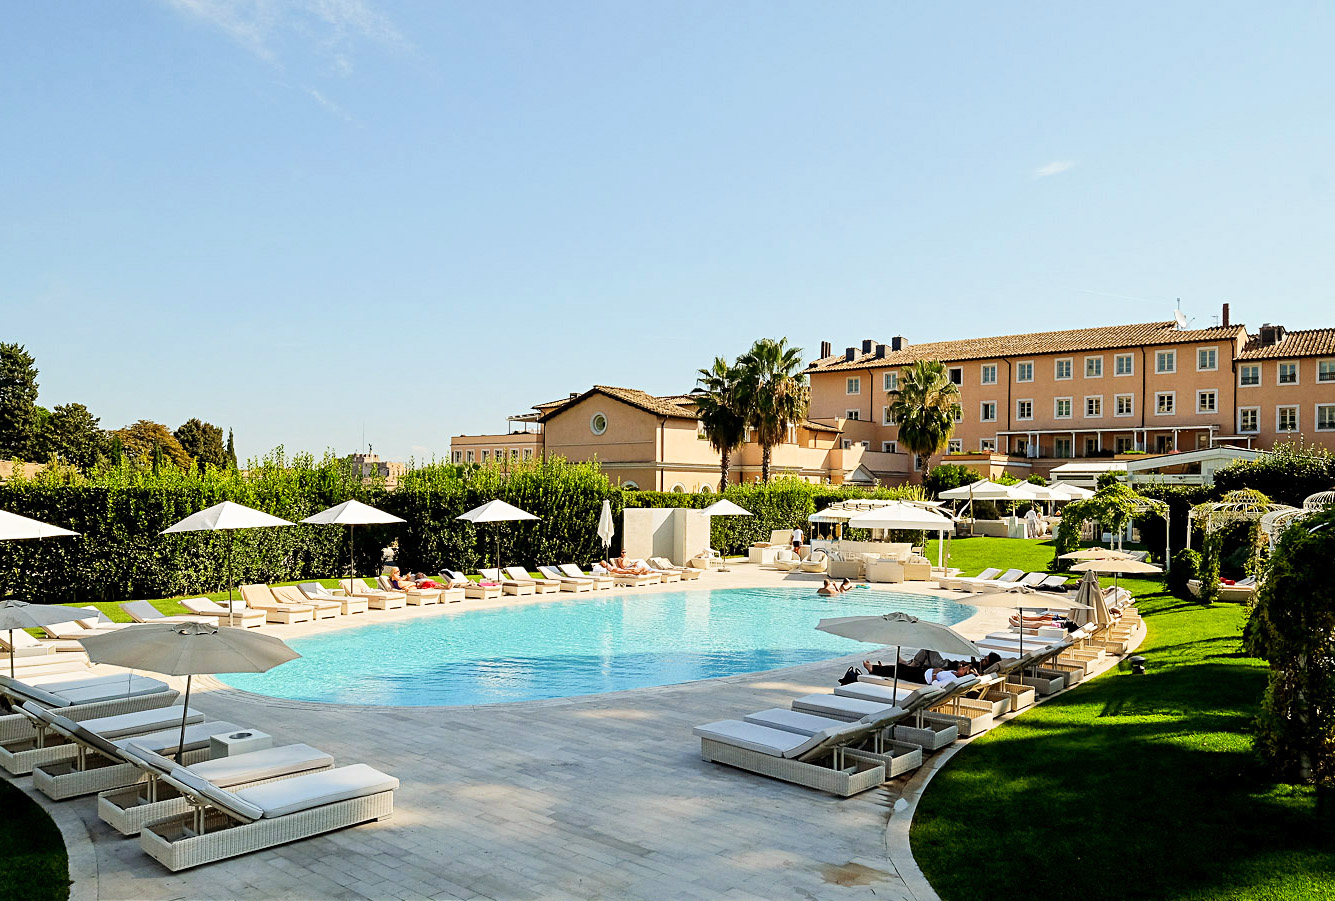 luxury hotel gran melia villa agrippina in the heart of rome